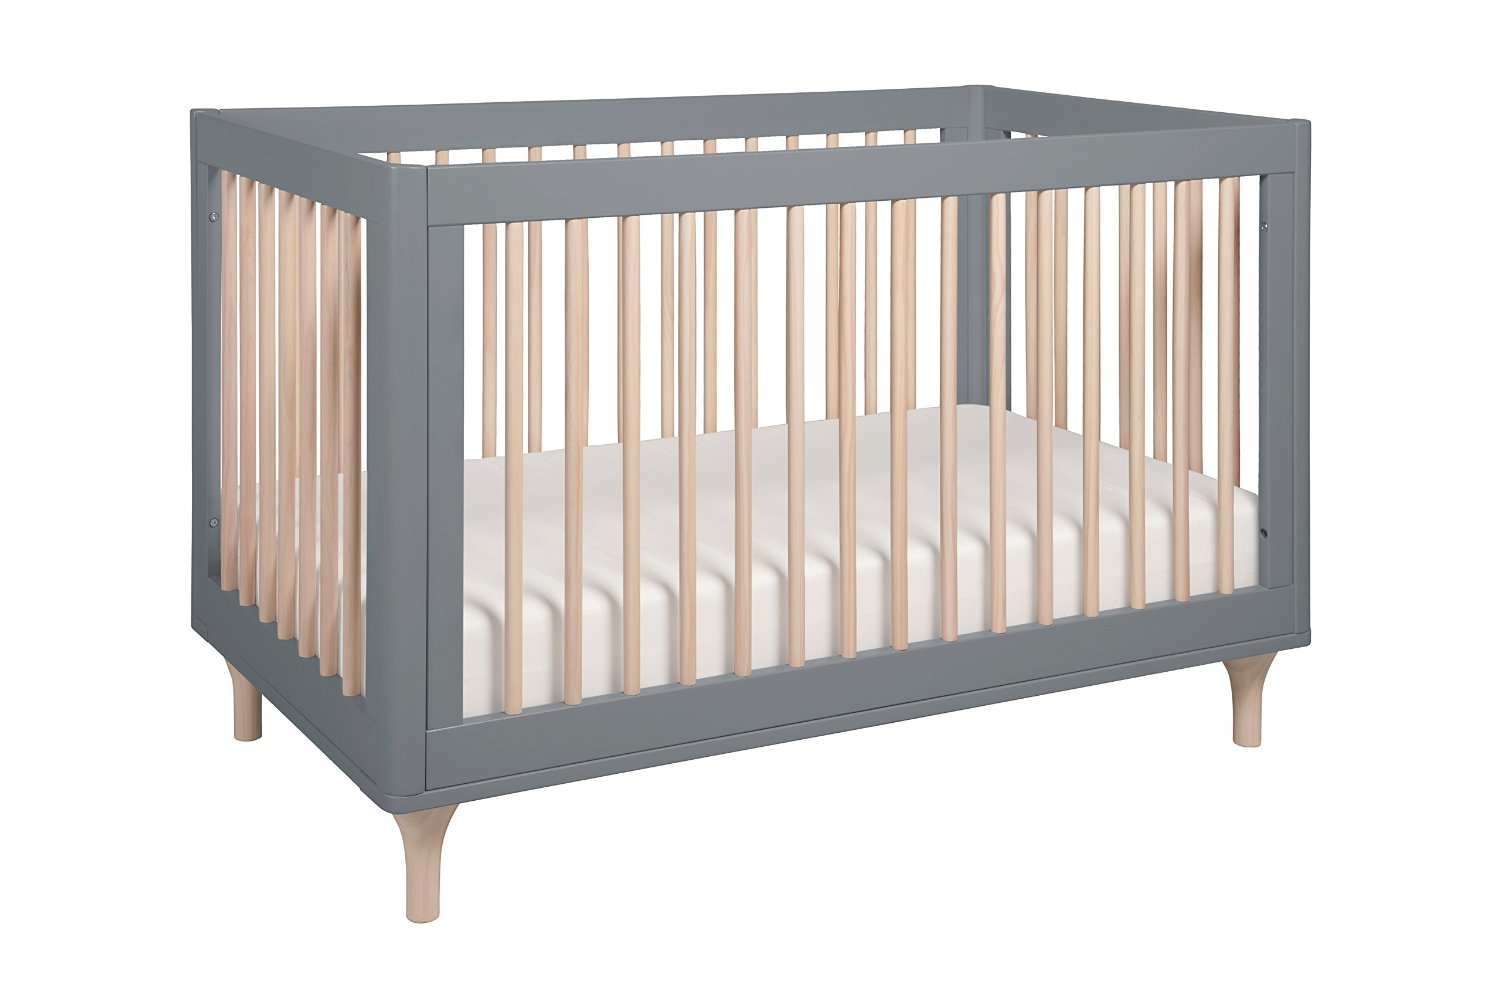 BabyLetto Lolly 3 in 1 Convertible Crib, Grey and Natural